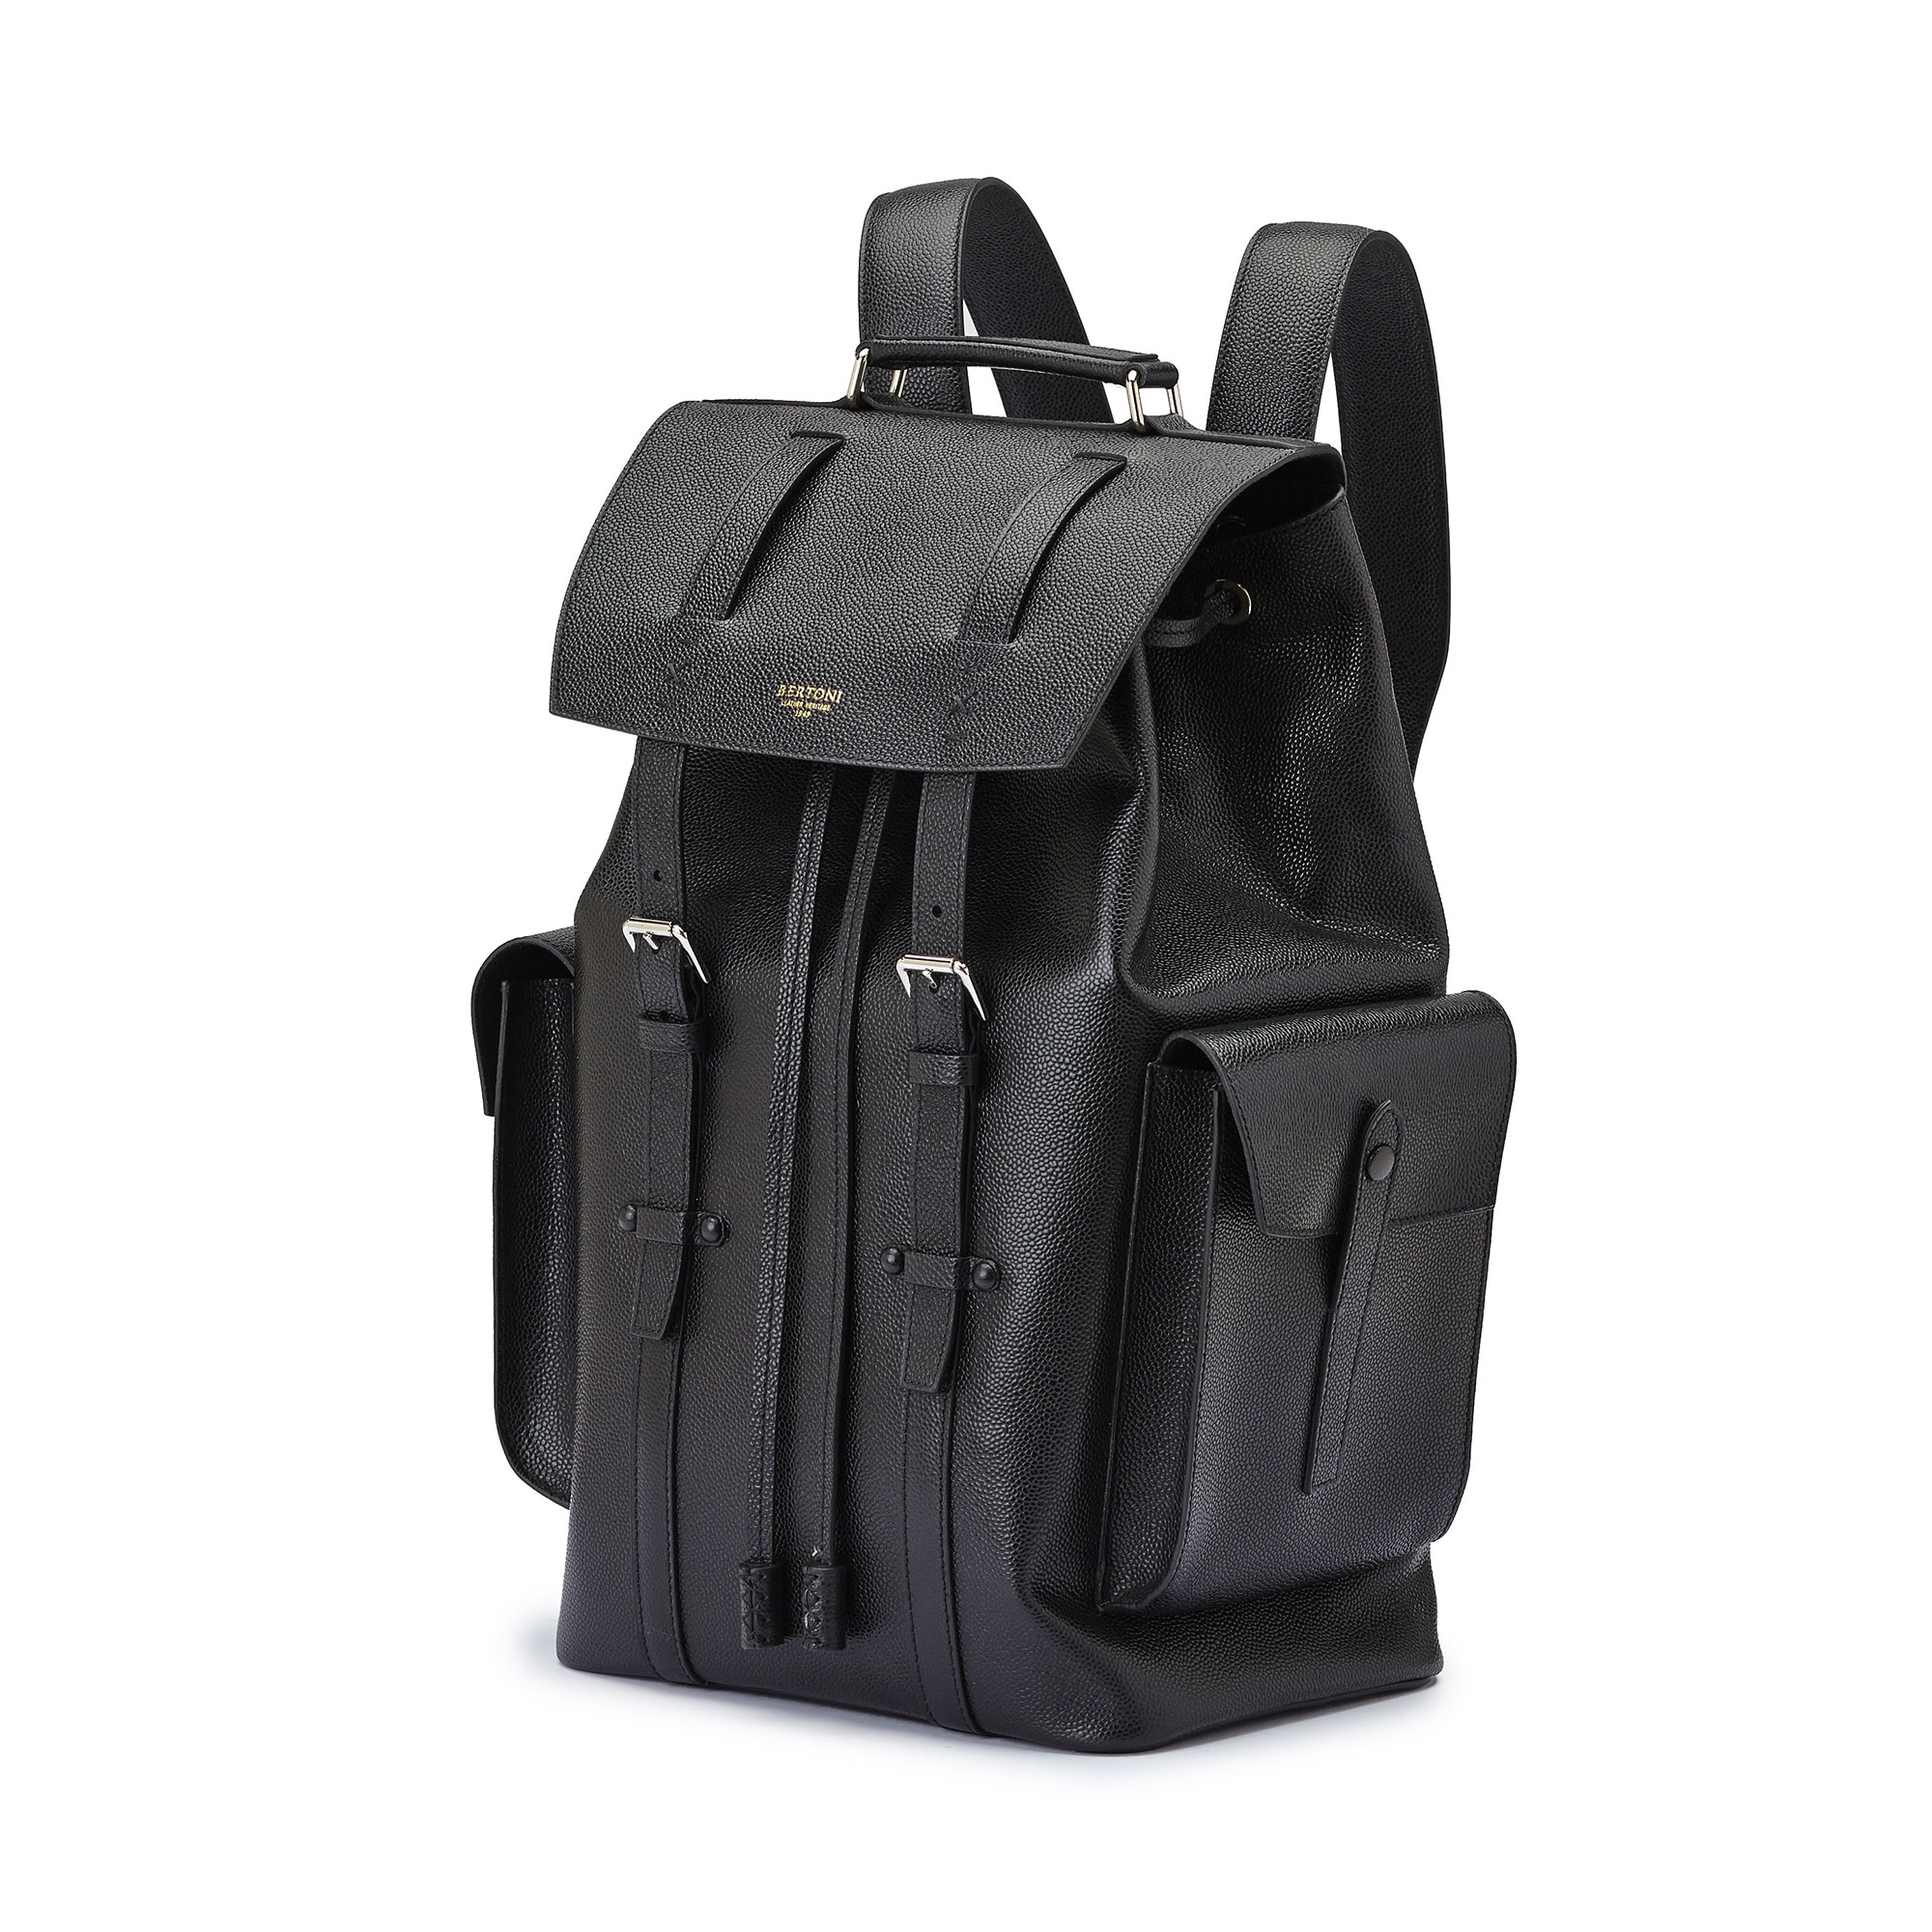 The alligator calf Traveller Backpack by Bertoni 1949 02